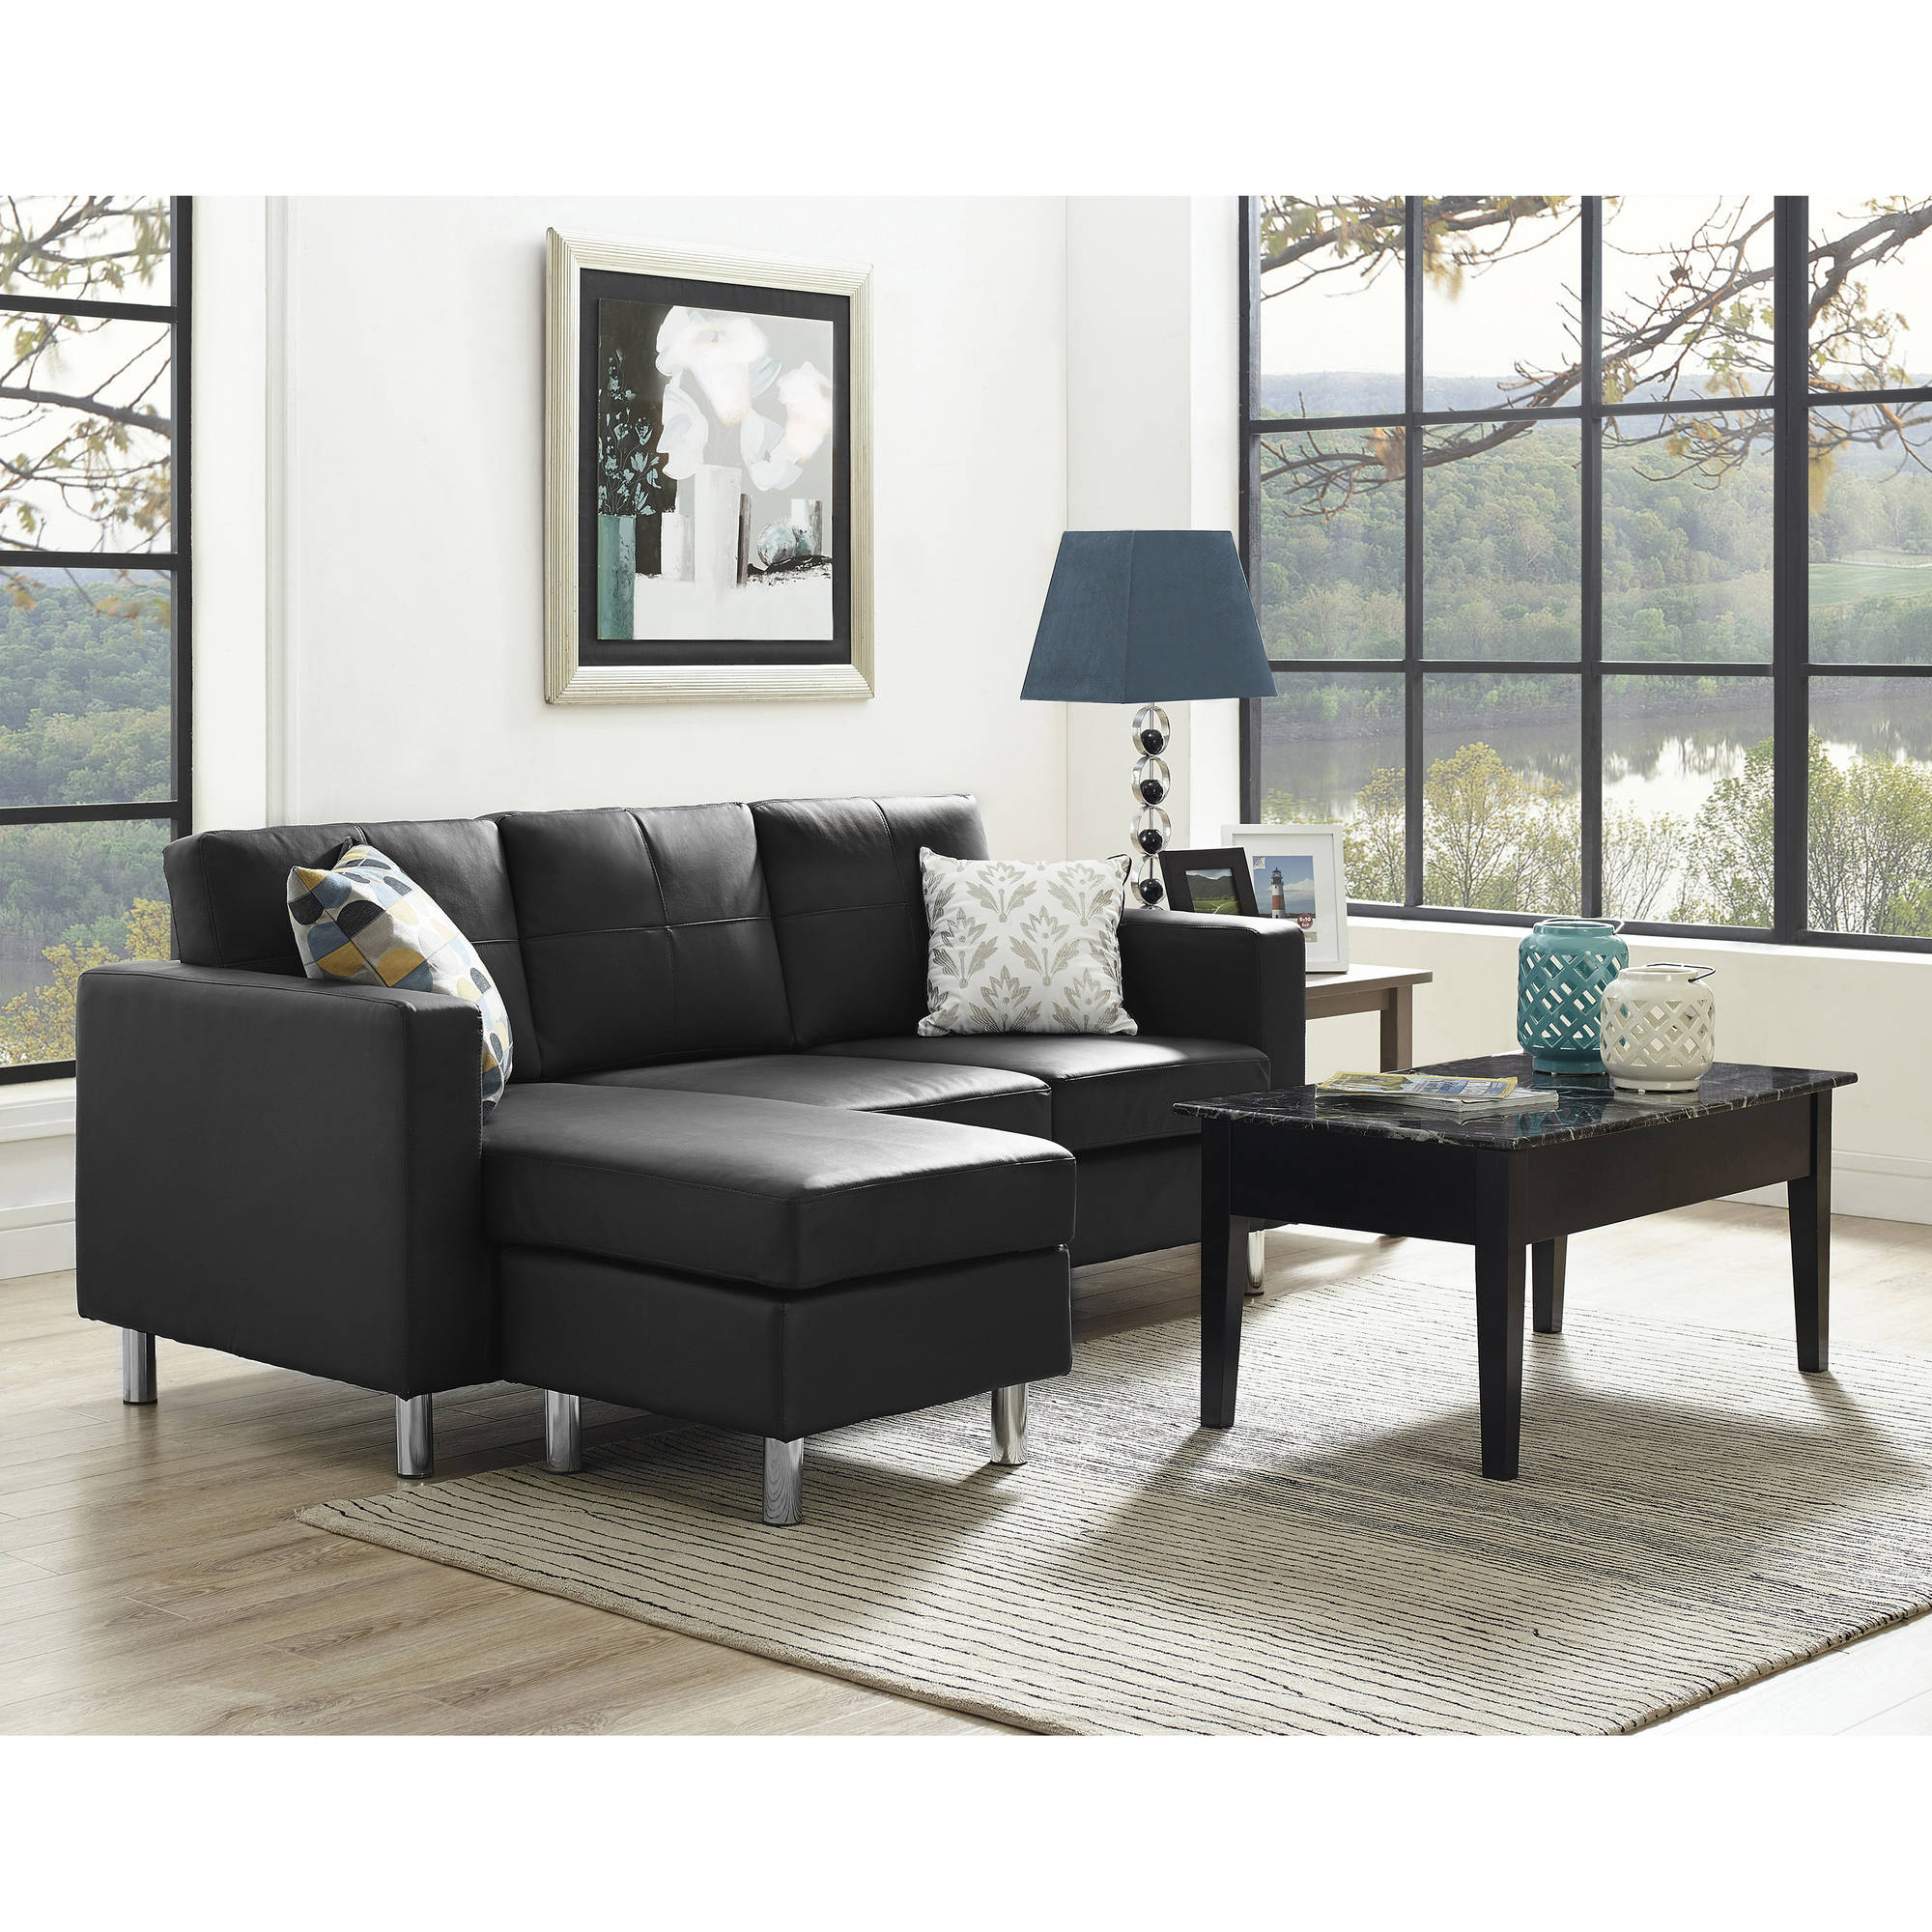 dorel living small spaces configurable sectional sofa multiple rh ebay com sectional sofa sleeper small spaces sectional sofa small room